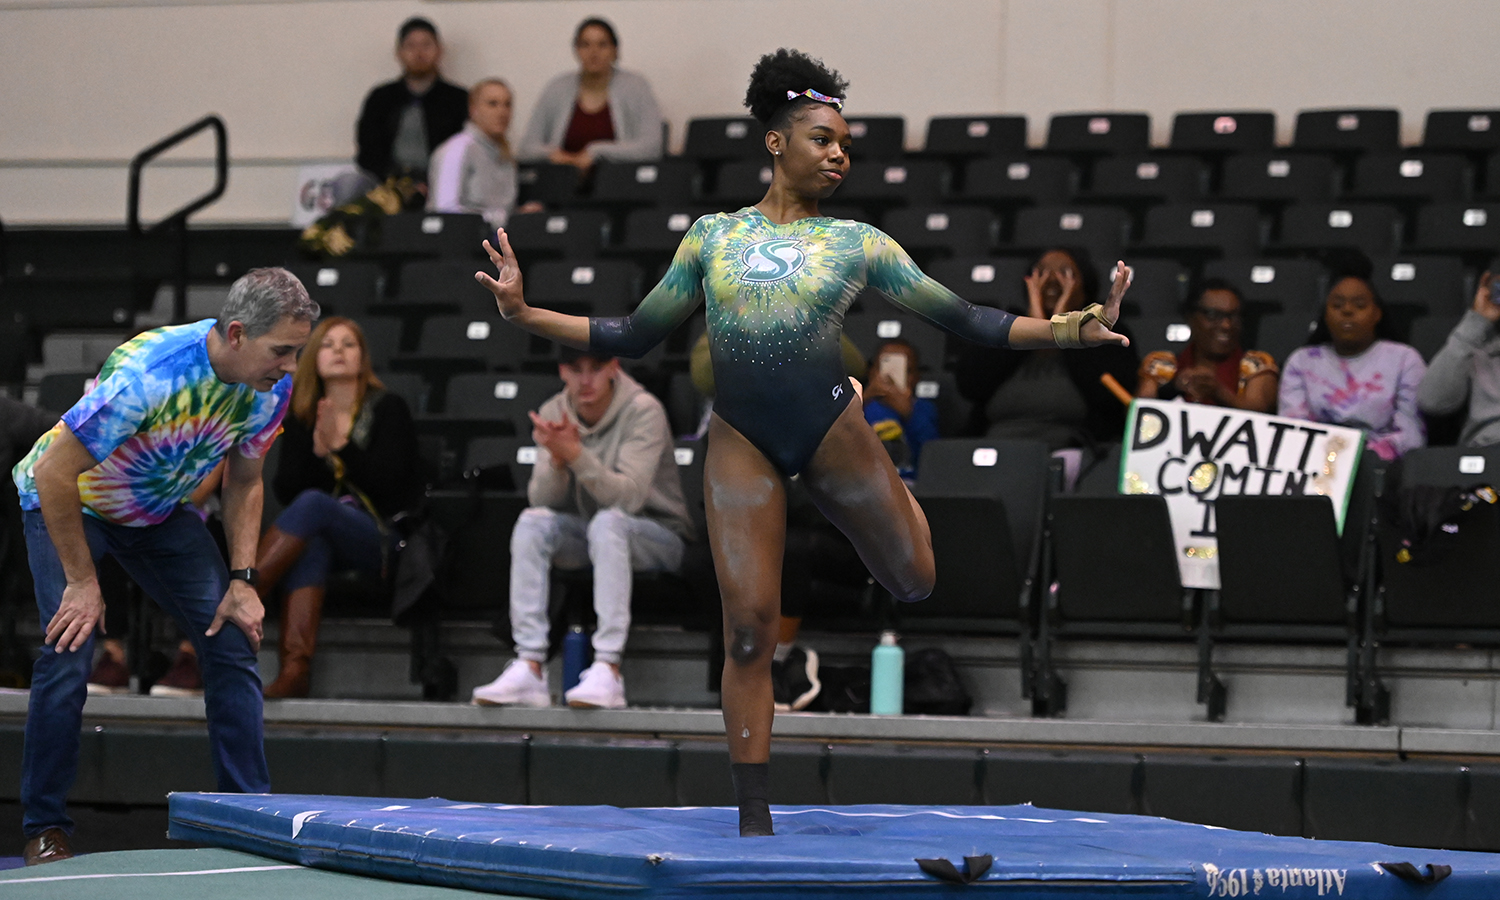 GYMNASTICS FINISHES SECOND, WATLEY FIRST ON VAULT AT SEATTLE PACIFIC TRI-MEET